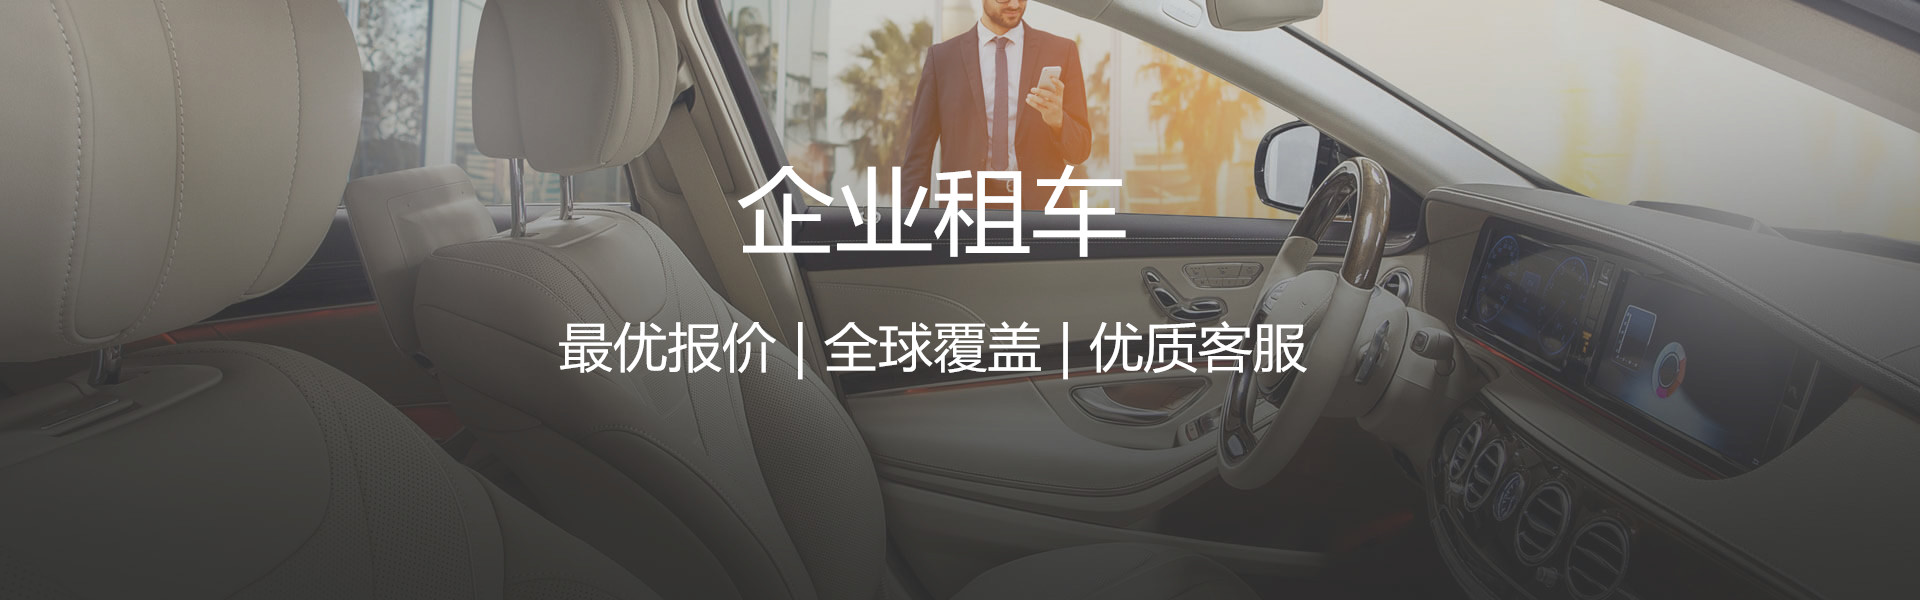 page/sixt.com-rent-a-car-for-business-hero-1_副本.jpg